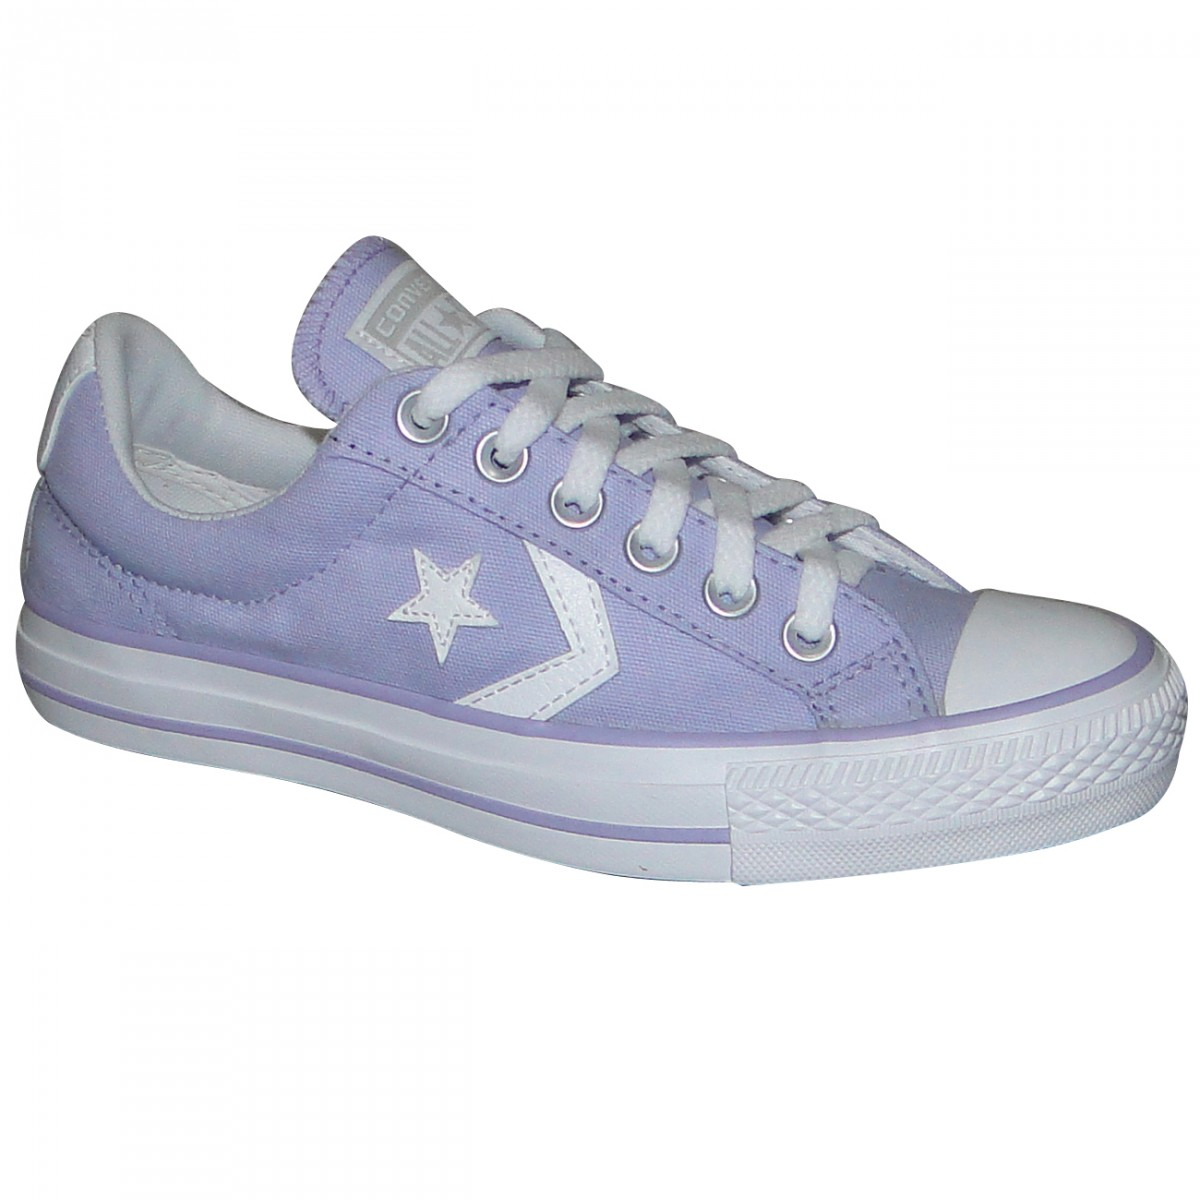 2bc1be25f5a TENIS ALL STAR CONVERSE STAR PLAYER CO055037 - Lilas Branco ...